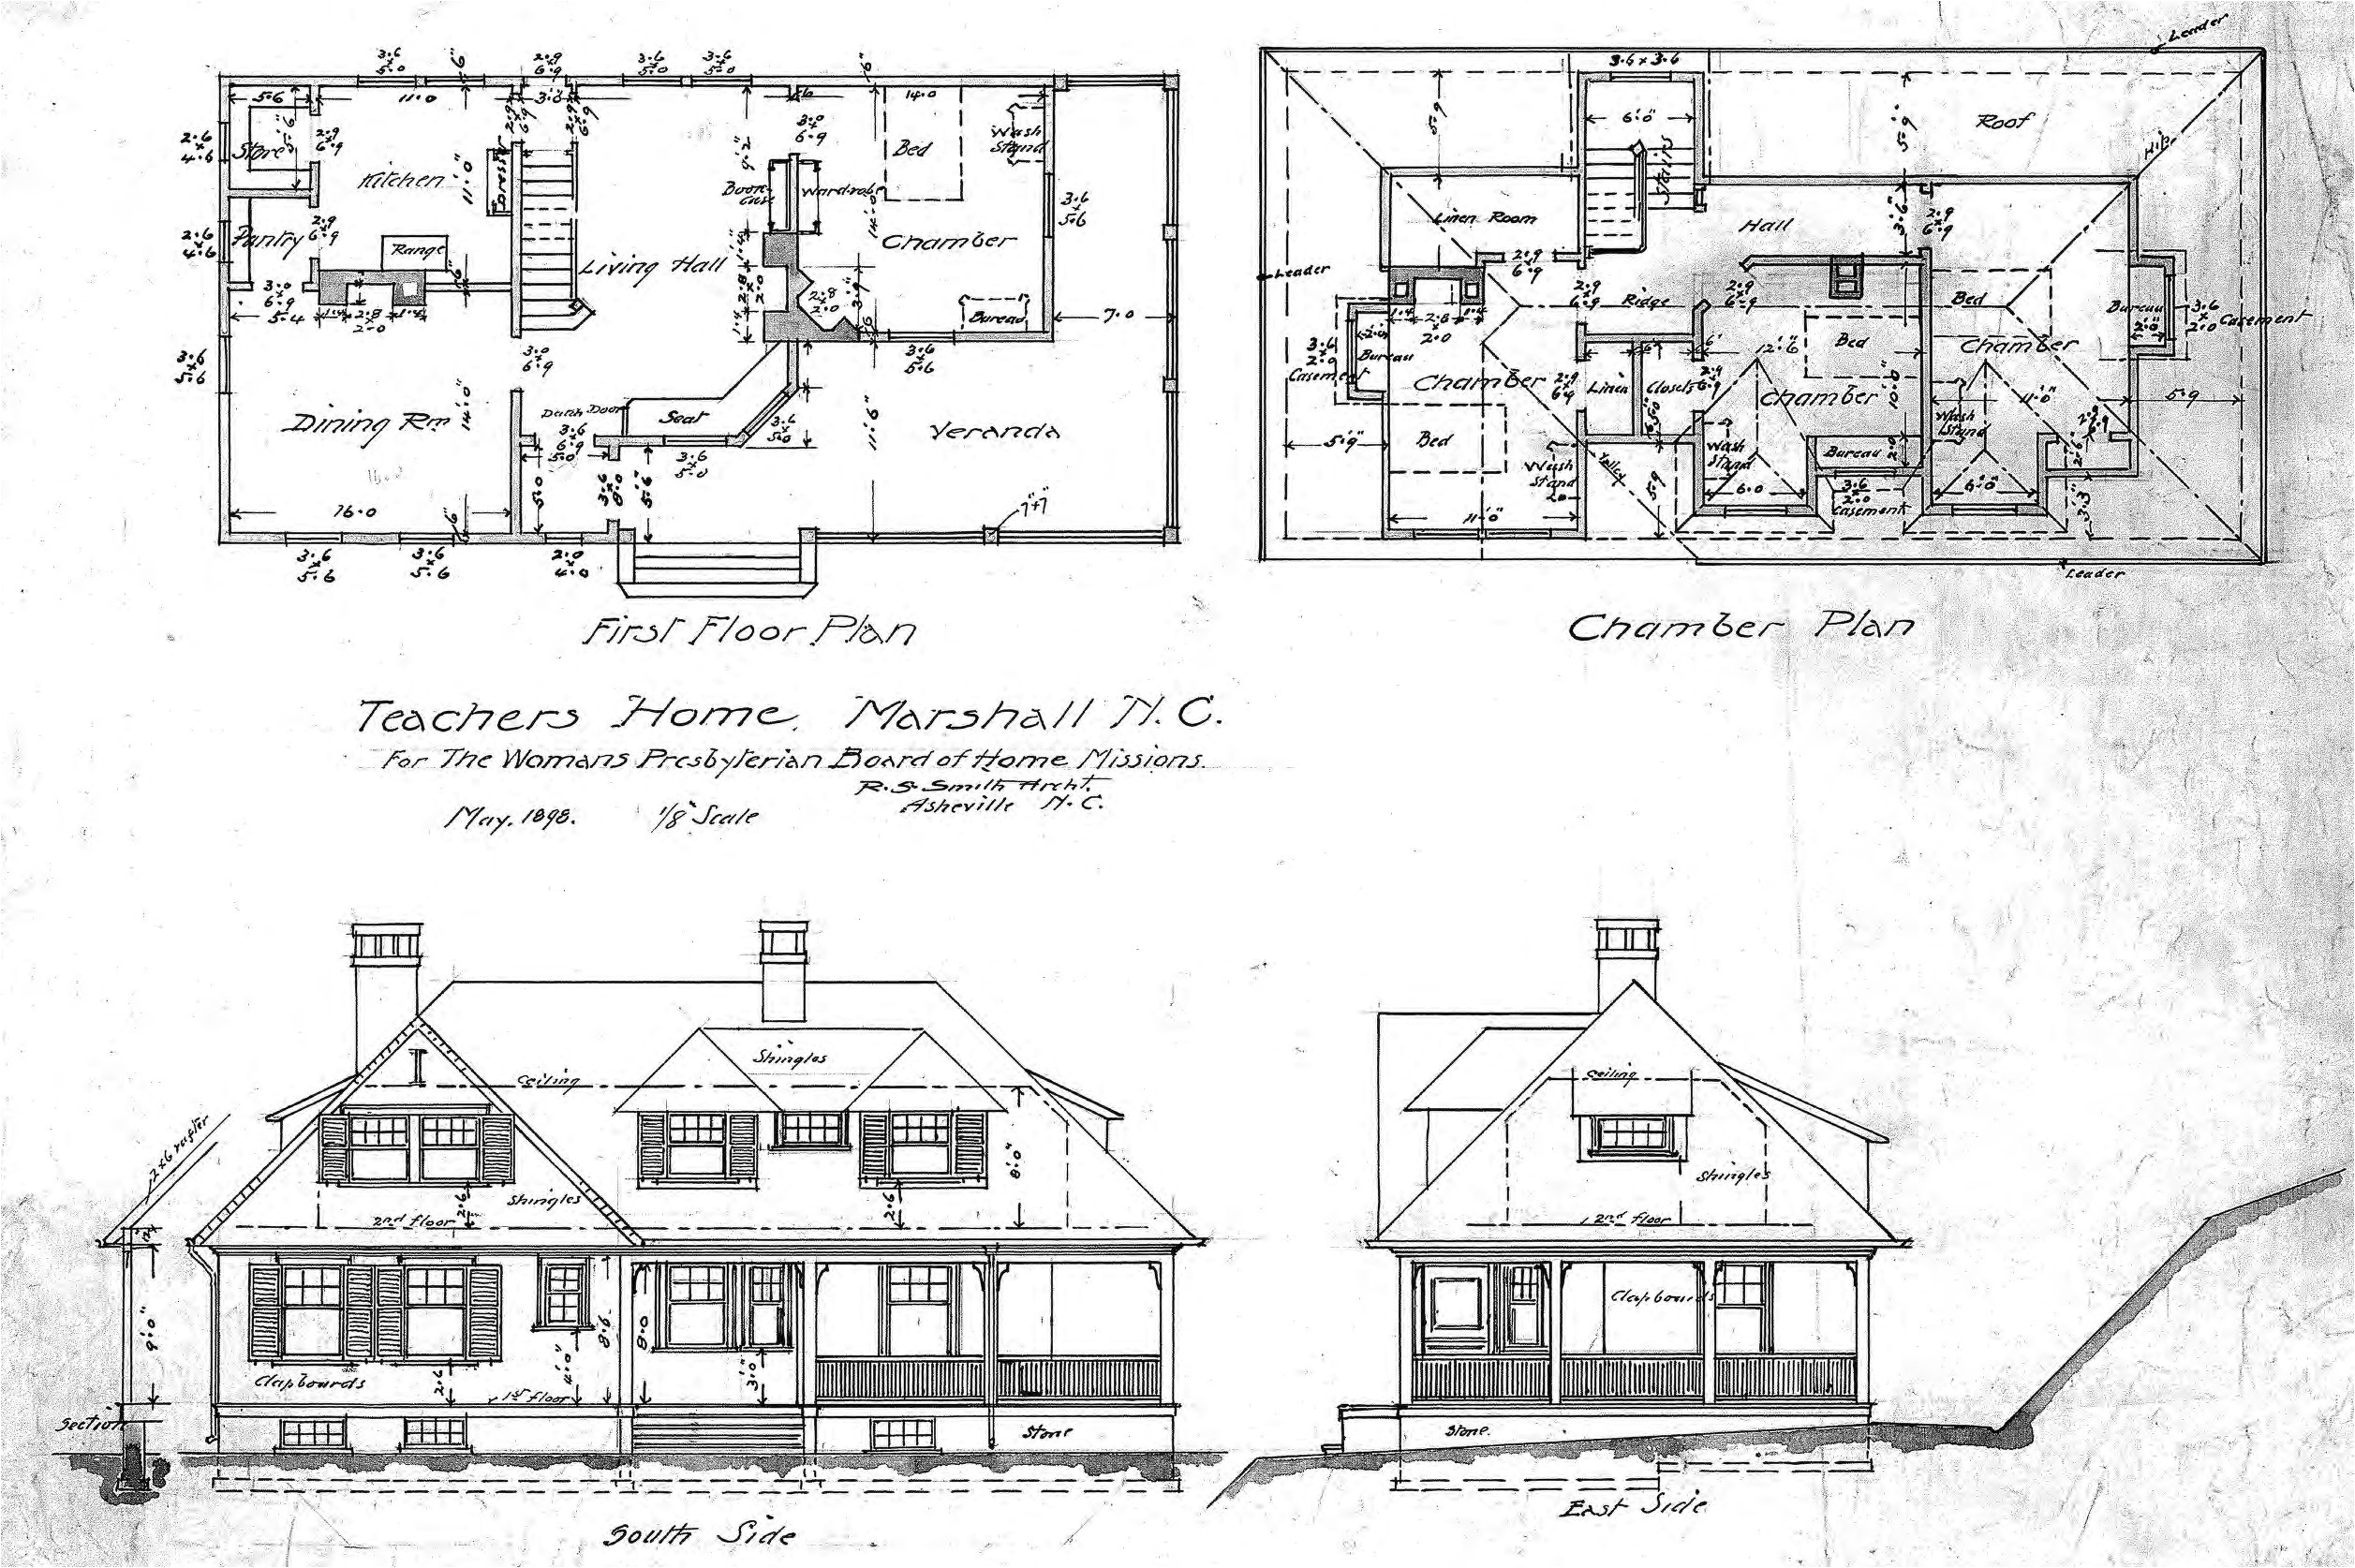 Home Plan and Elevation House Plans and Design Architectural House Plans and